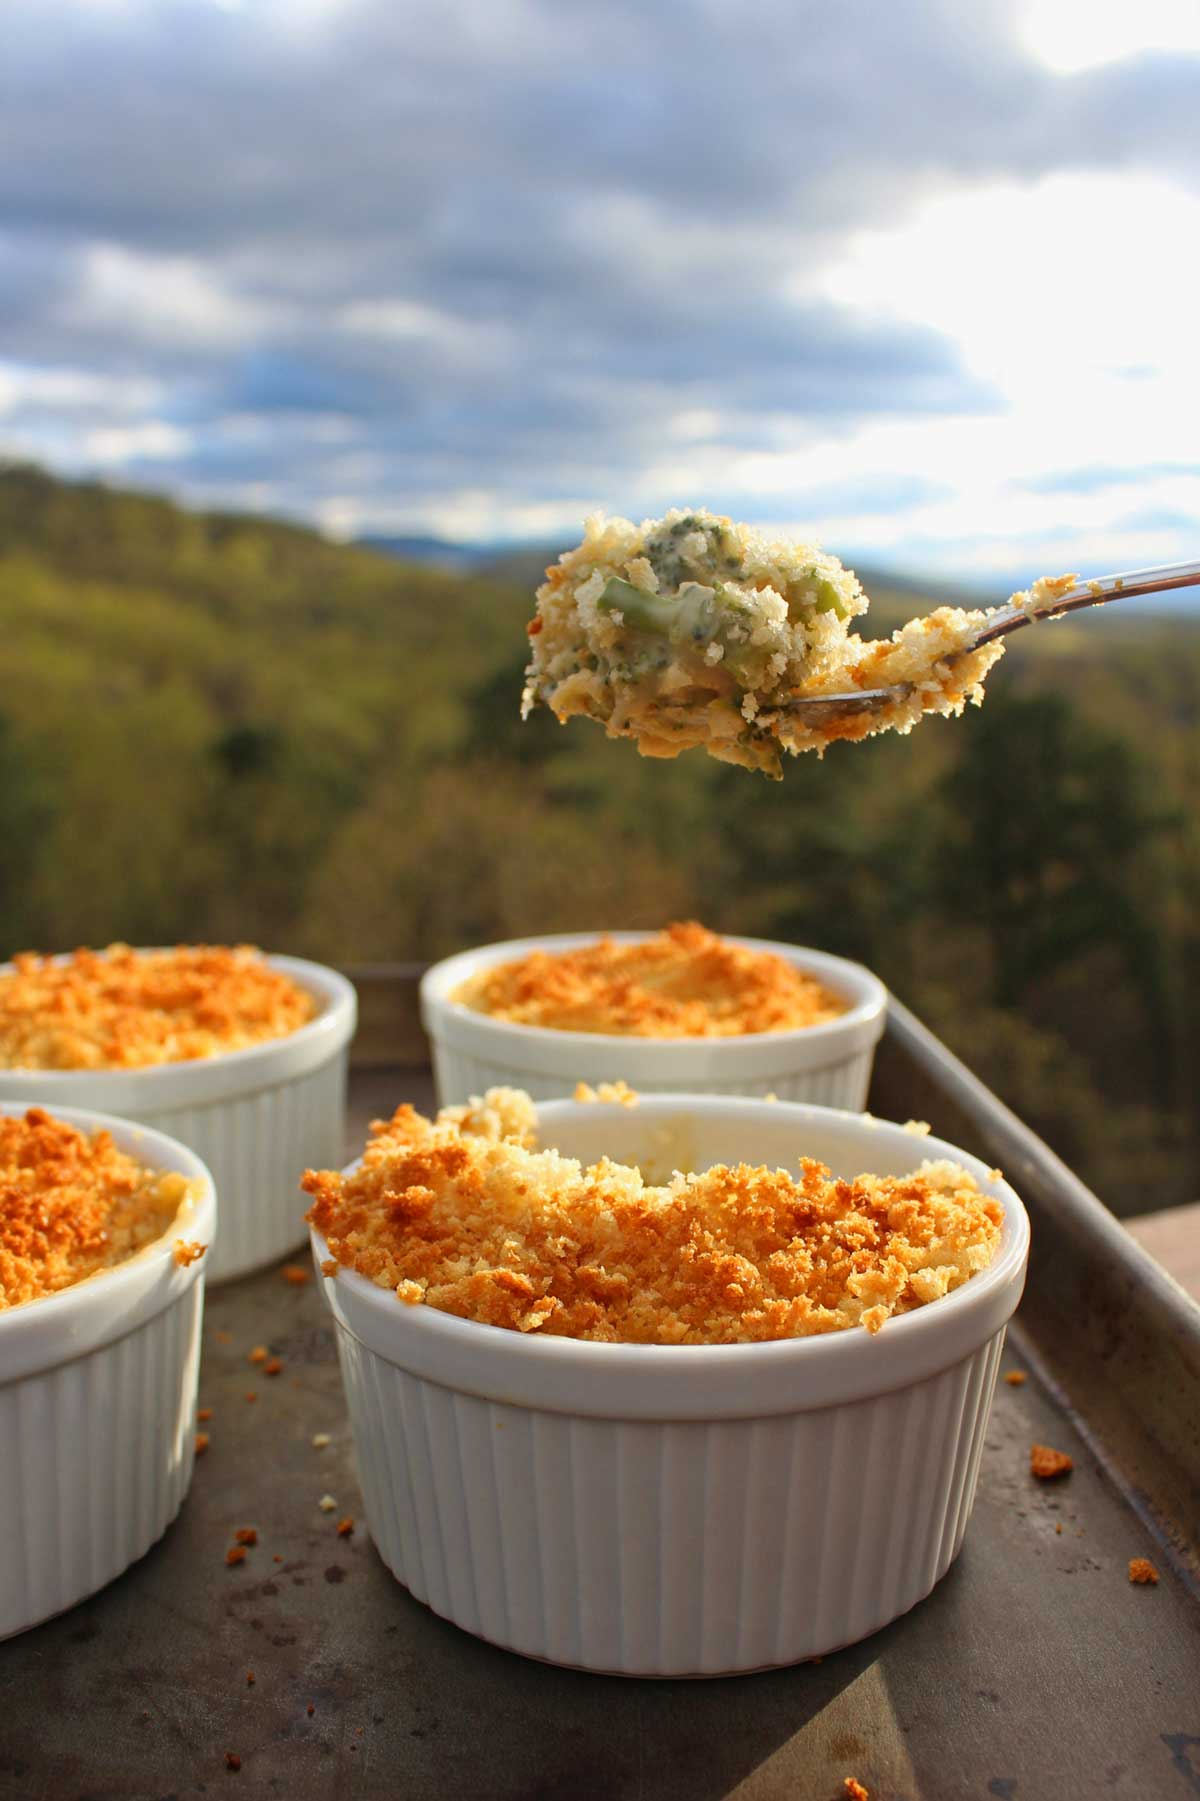 Mini cheesy broccoli casseroles are a versatile side dish, filled with tender broccoli, a made from scratch cheese sauce, topped with crunchy bread crumbs.